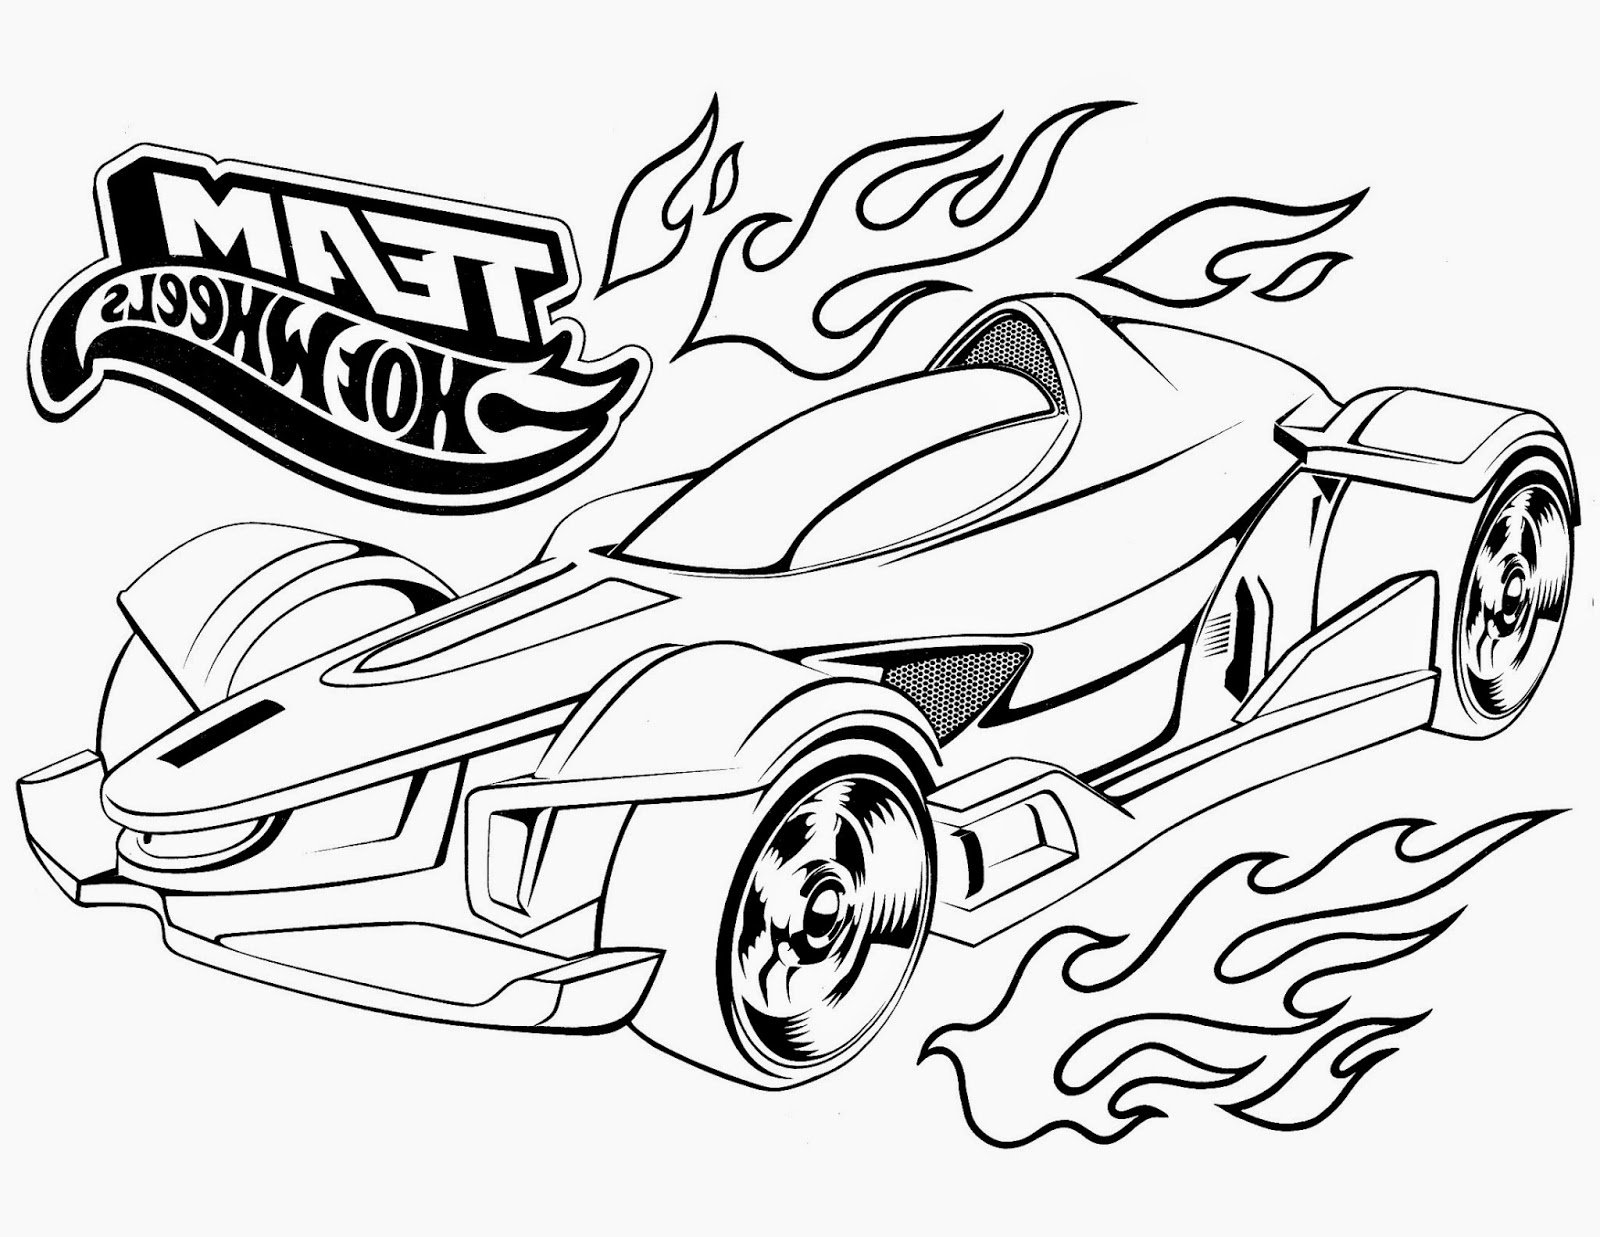 coloring pages matchbox cars coloriage voiture hot wheels haut coloriage hd images et cars matchbox coloring pages